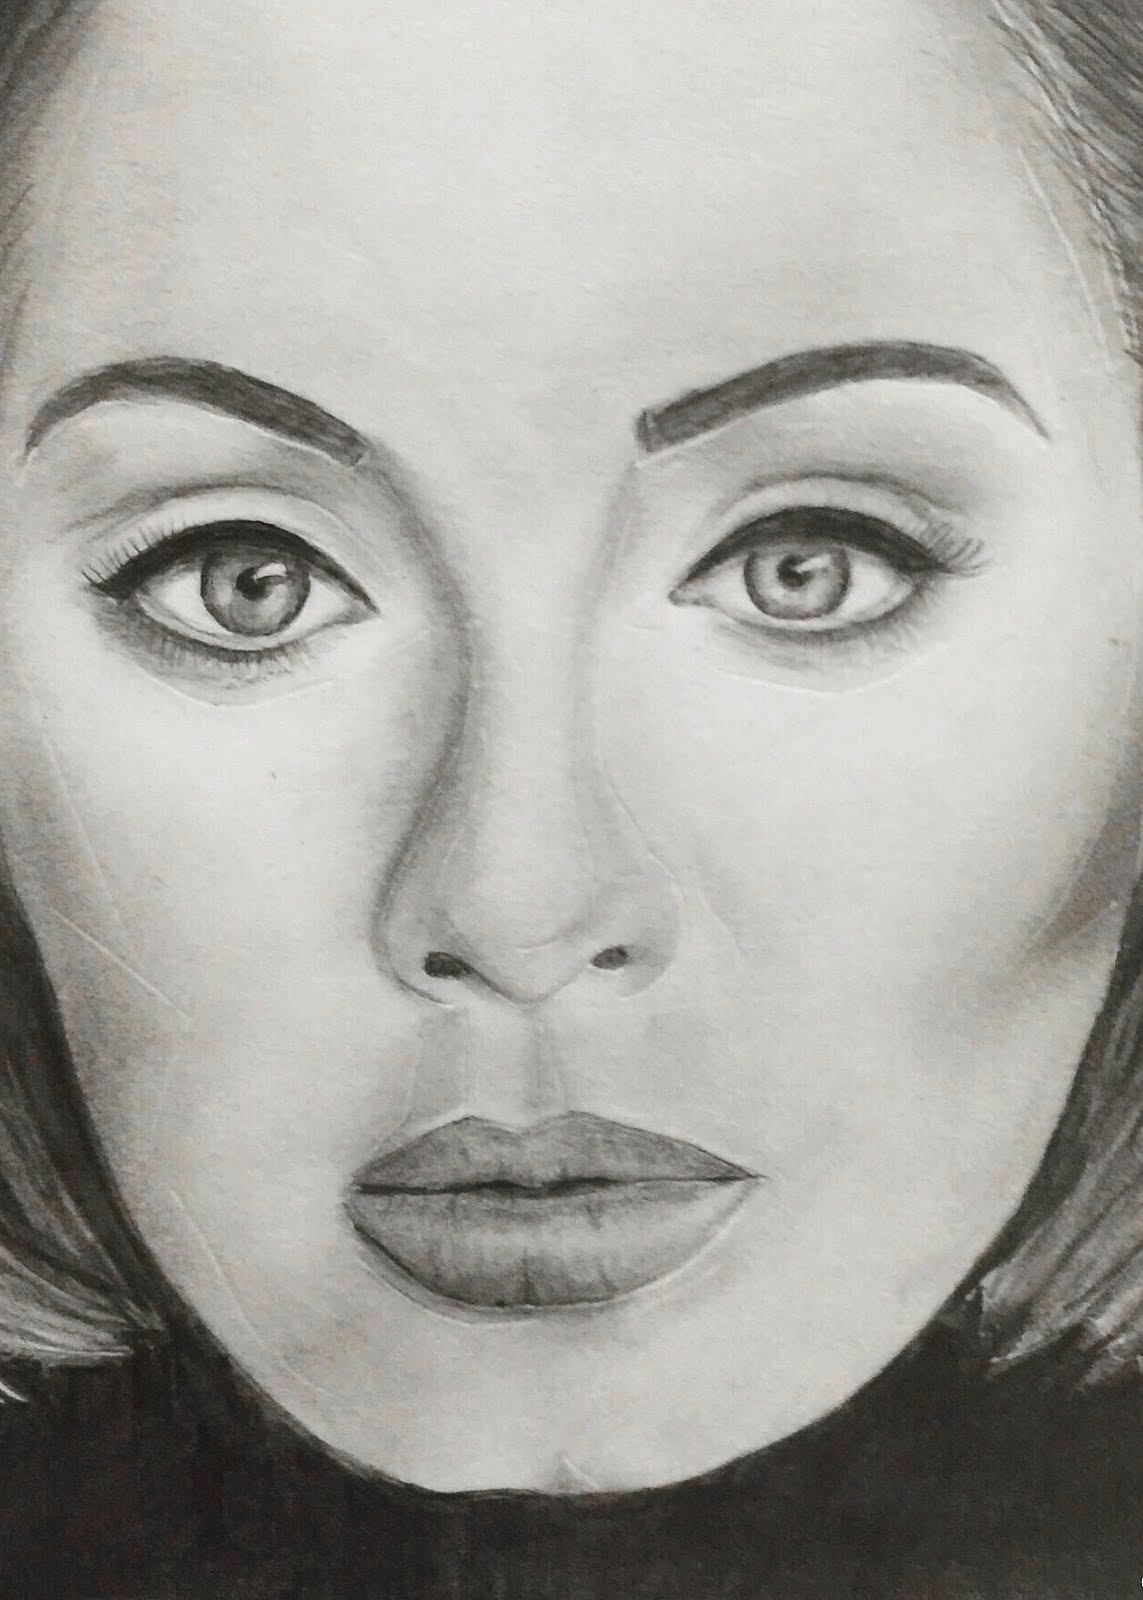 graphic royalty free STEP BY STEP PROCESS OF DRAWING ADELE